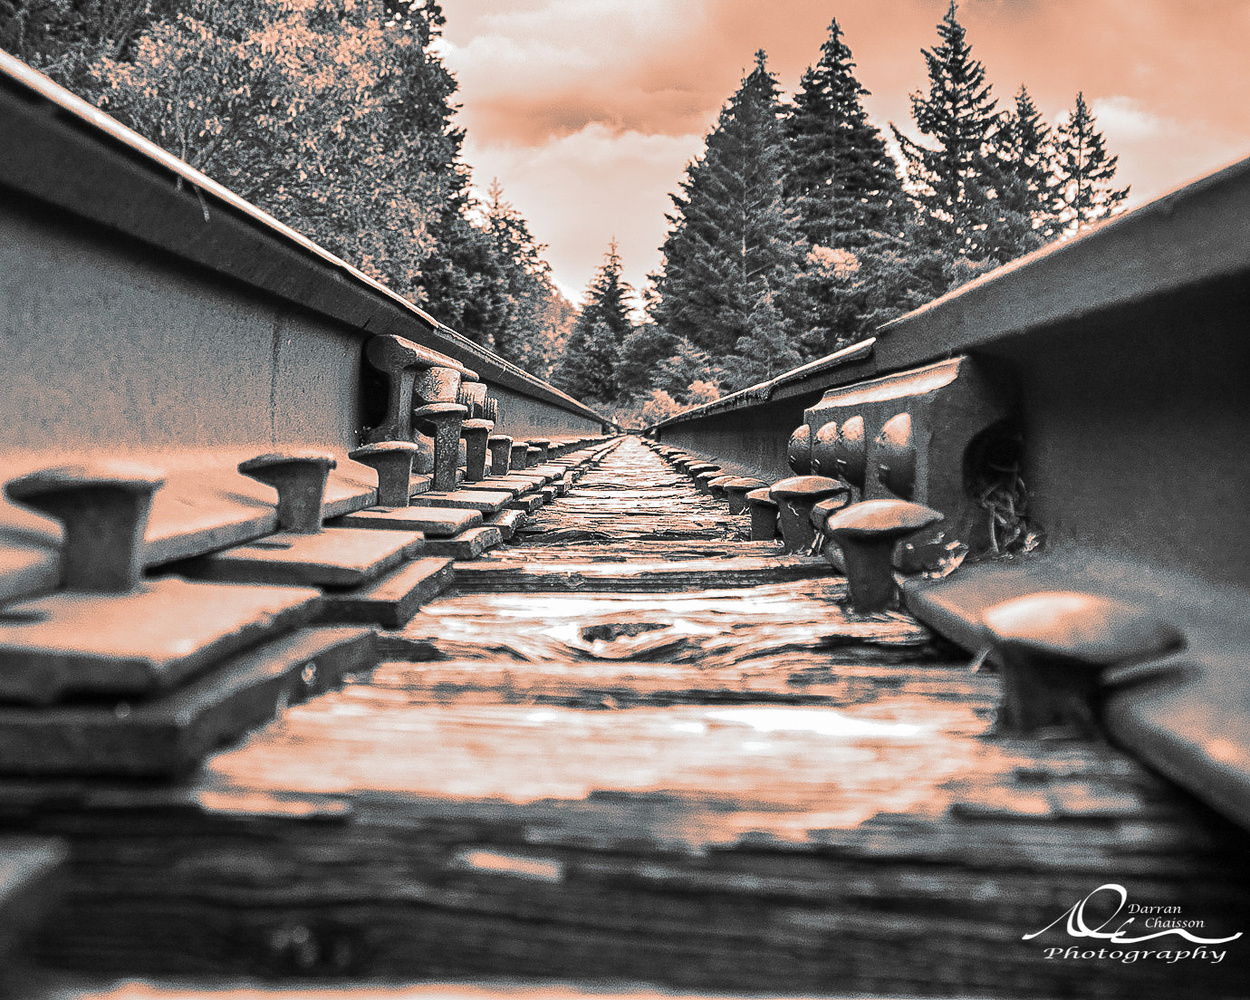 Perspective by Darran Chaisson